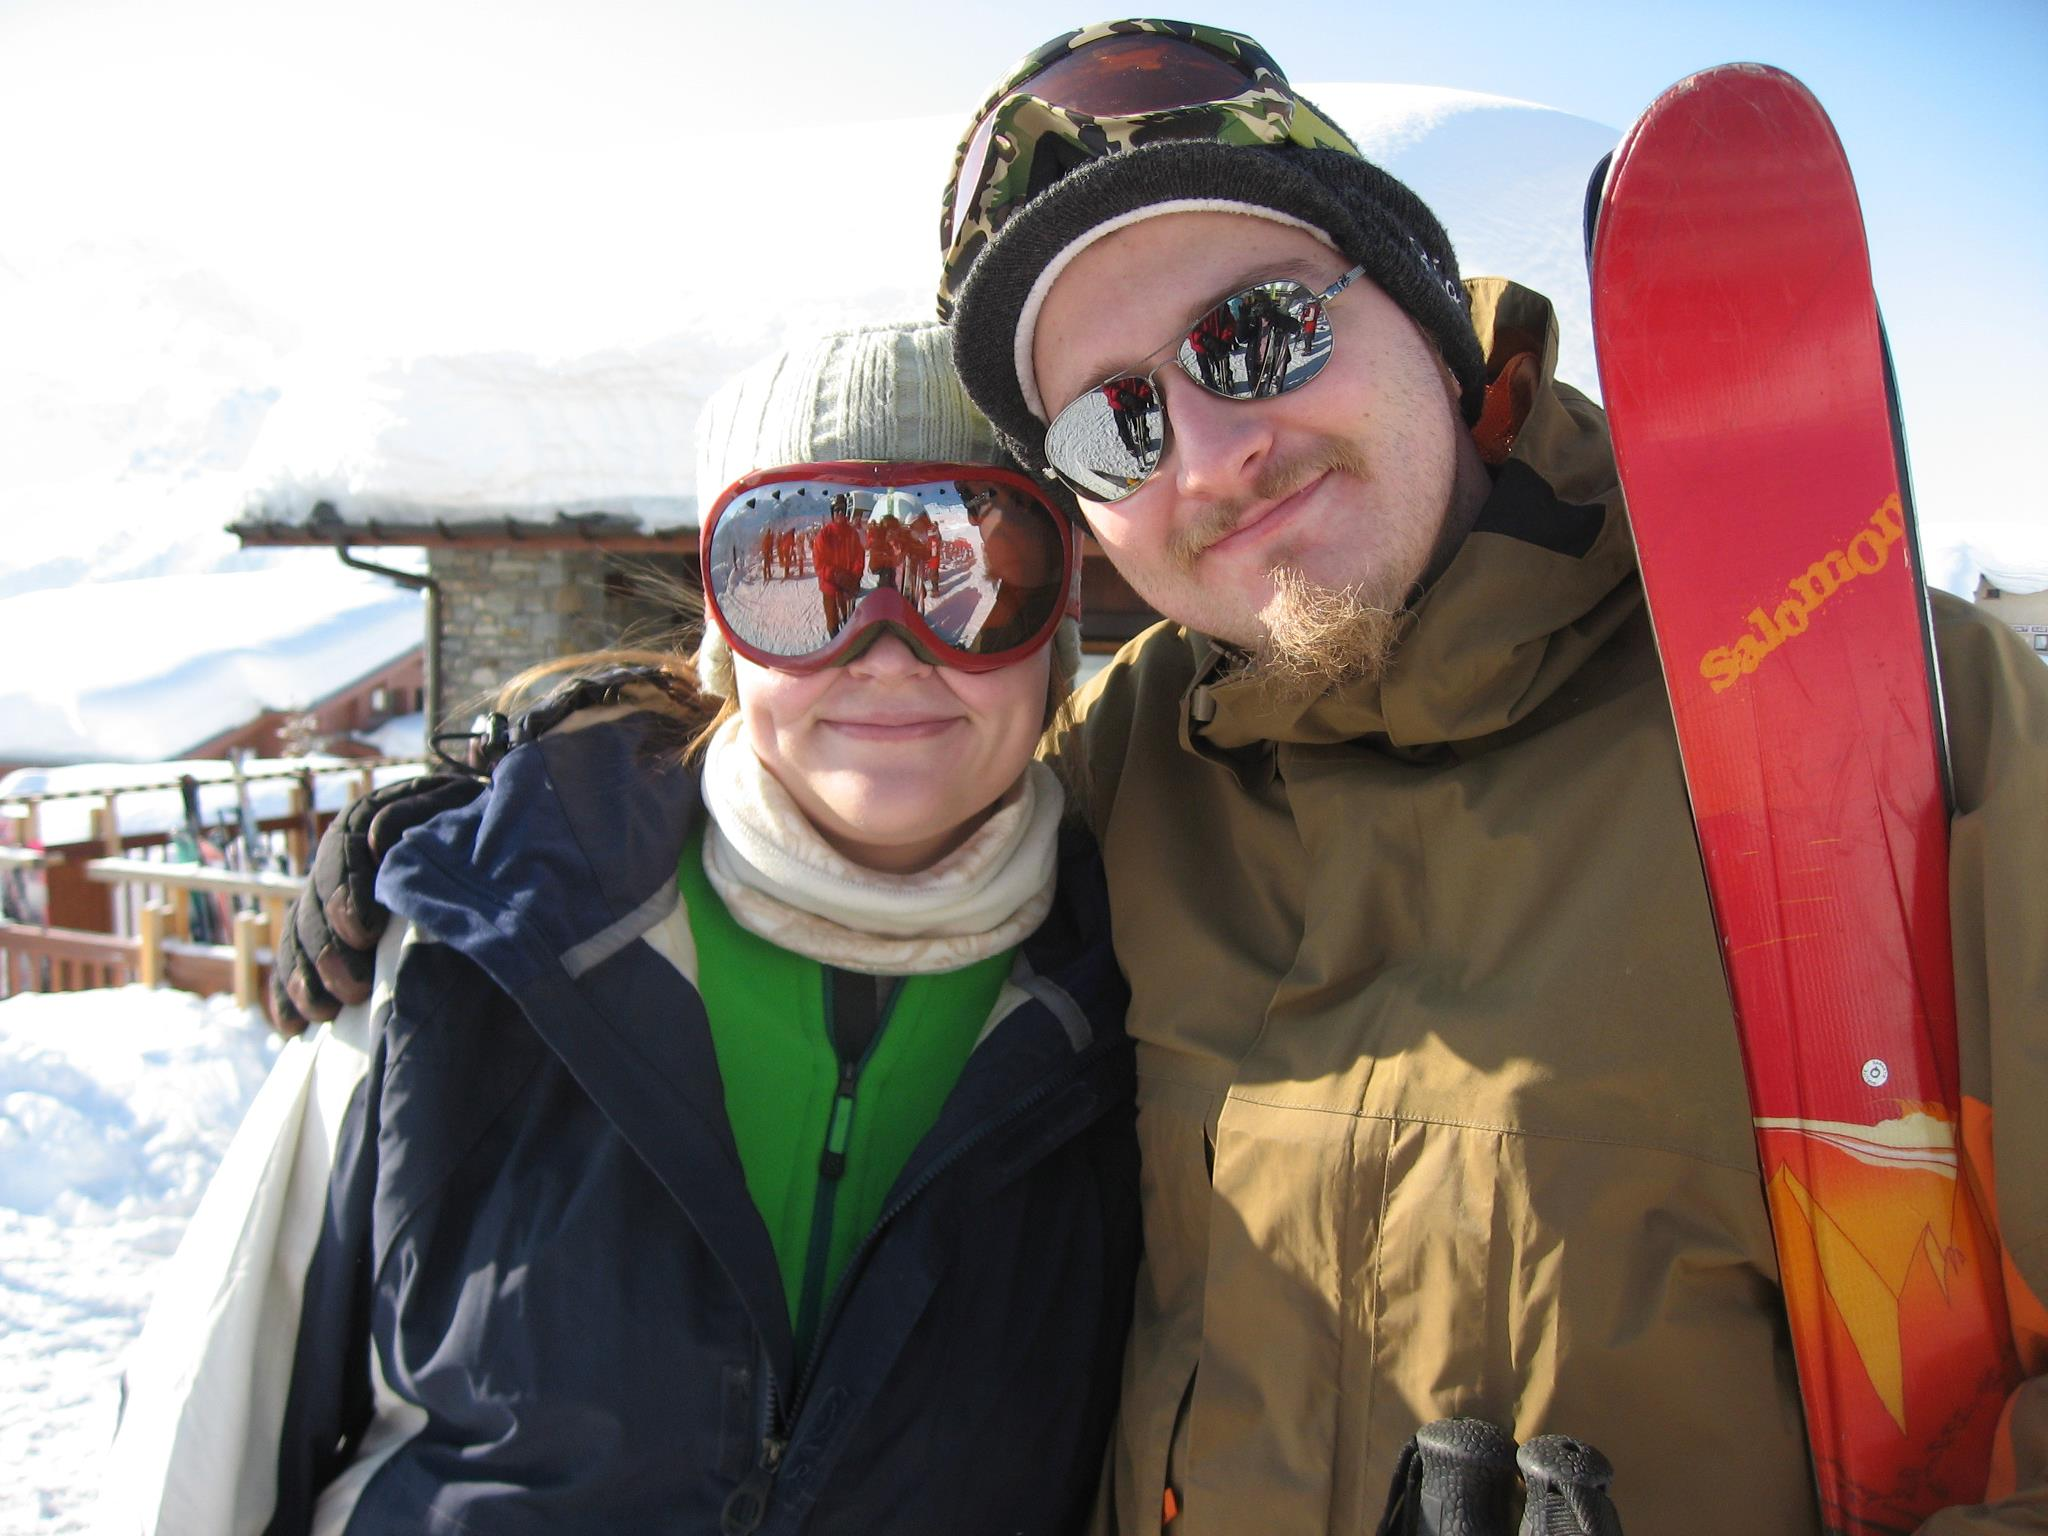 me and david at la rosiere